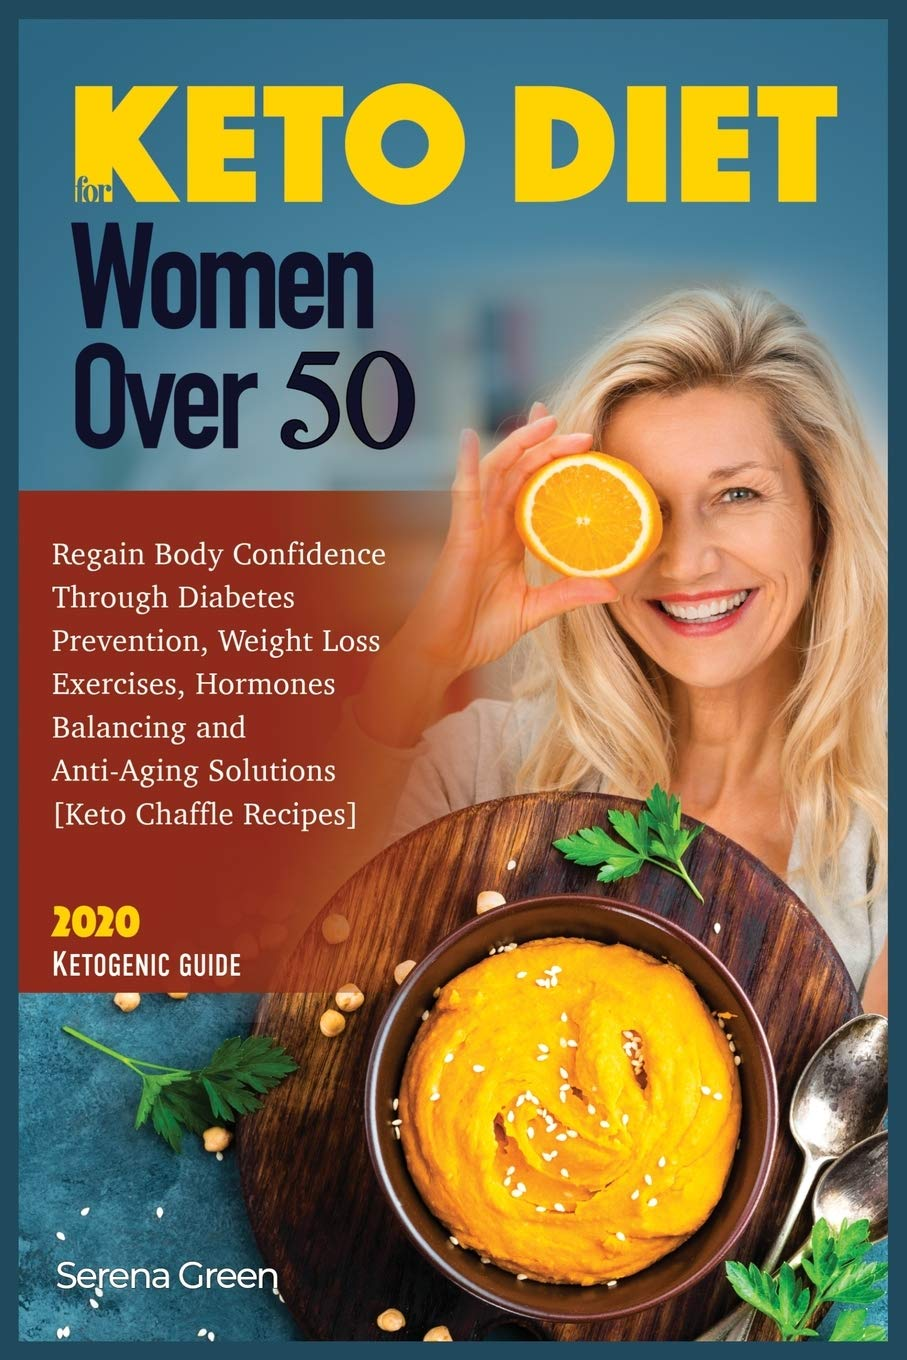 Keto Diet for Women Over 50: Regain Body Confidence Through Diabetes Prevention, Weight Loss Exercises, Hormones Balancing and Anti-Aging Solutions ... Recipes] 2020 Ketogenic Guide (Ketosis) 1